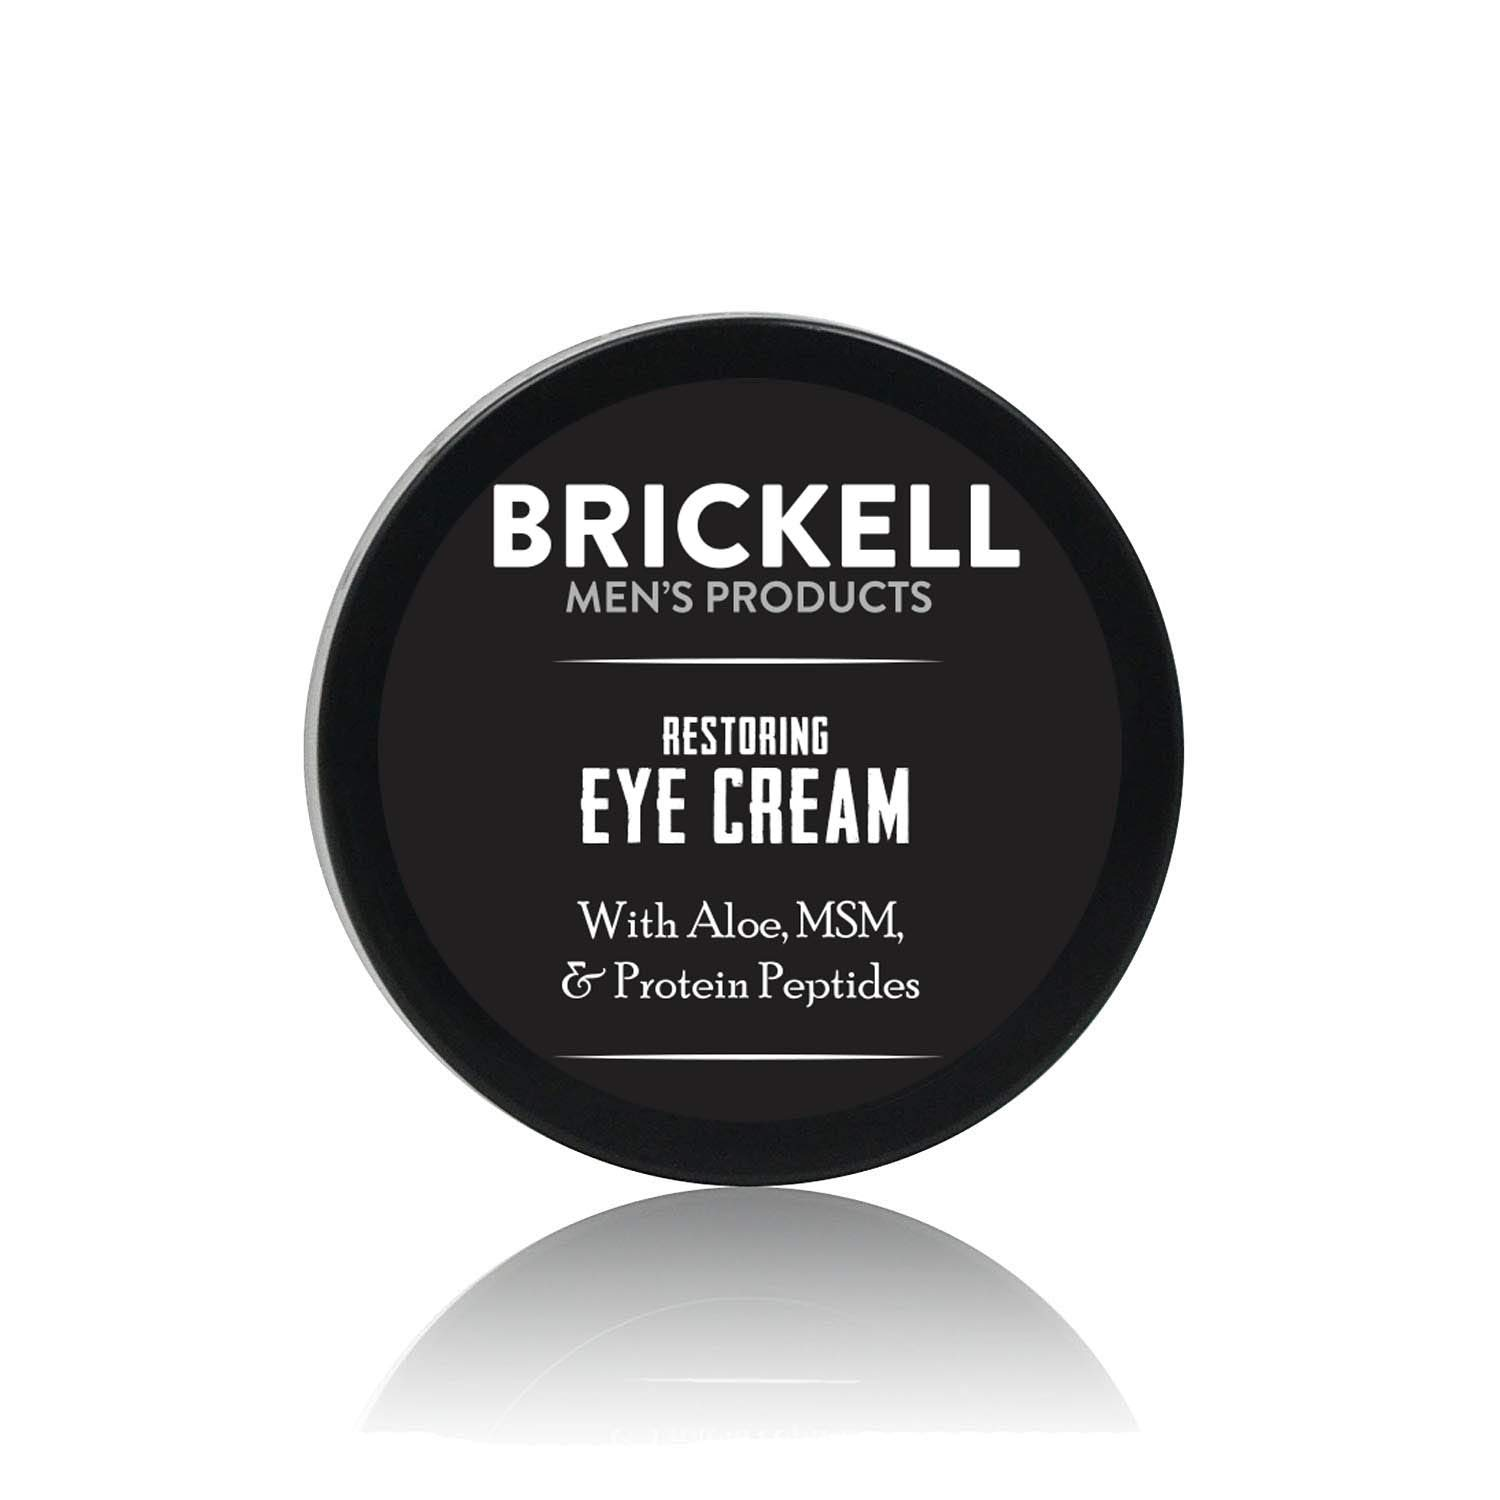 Brickell Men's Restoring Eye Cream for Men, Natural and Organic Anti Aging Eye Balm To Reduce Puffiness, Wrinkles, Dark Circles, Crows Feet and Under Eye Bags, .5 Ounce, Unscented by Brickell Men's Products